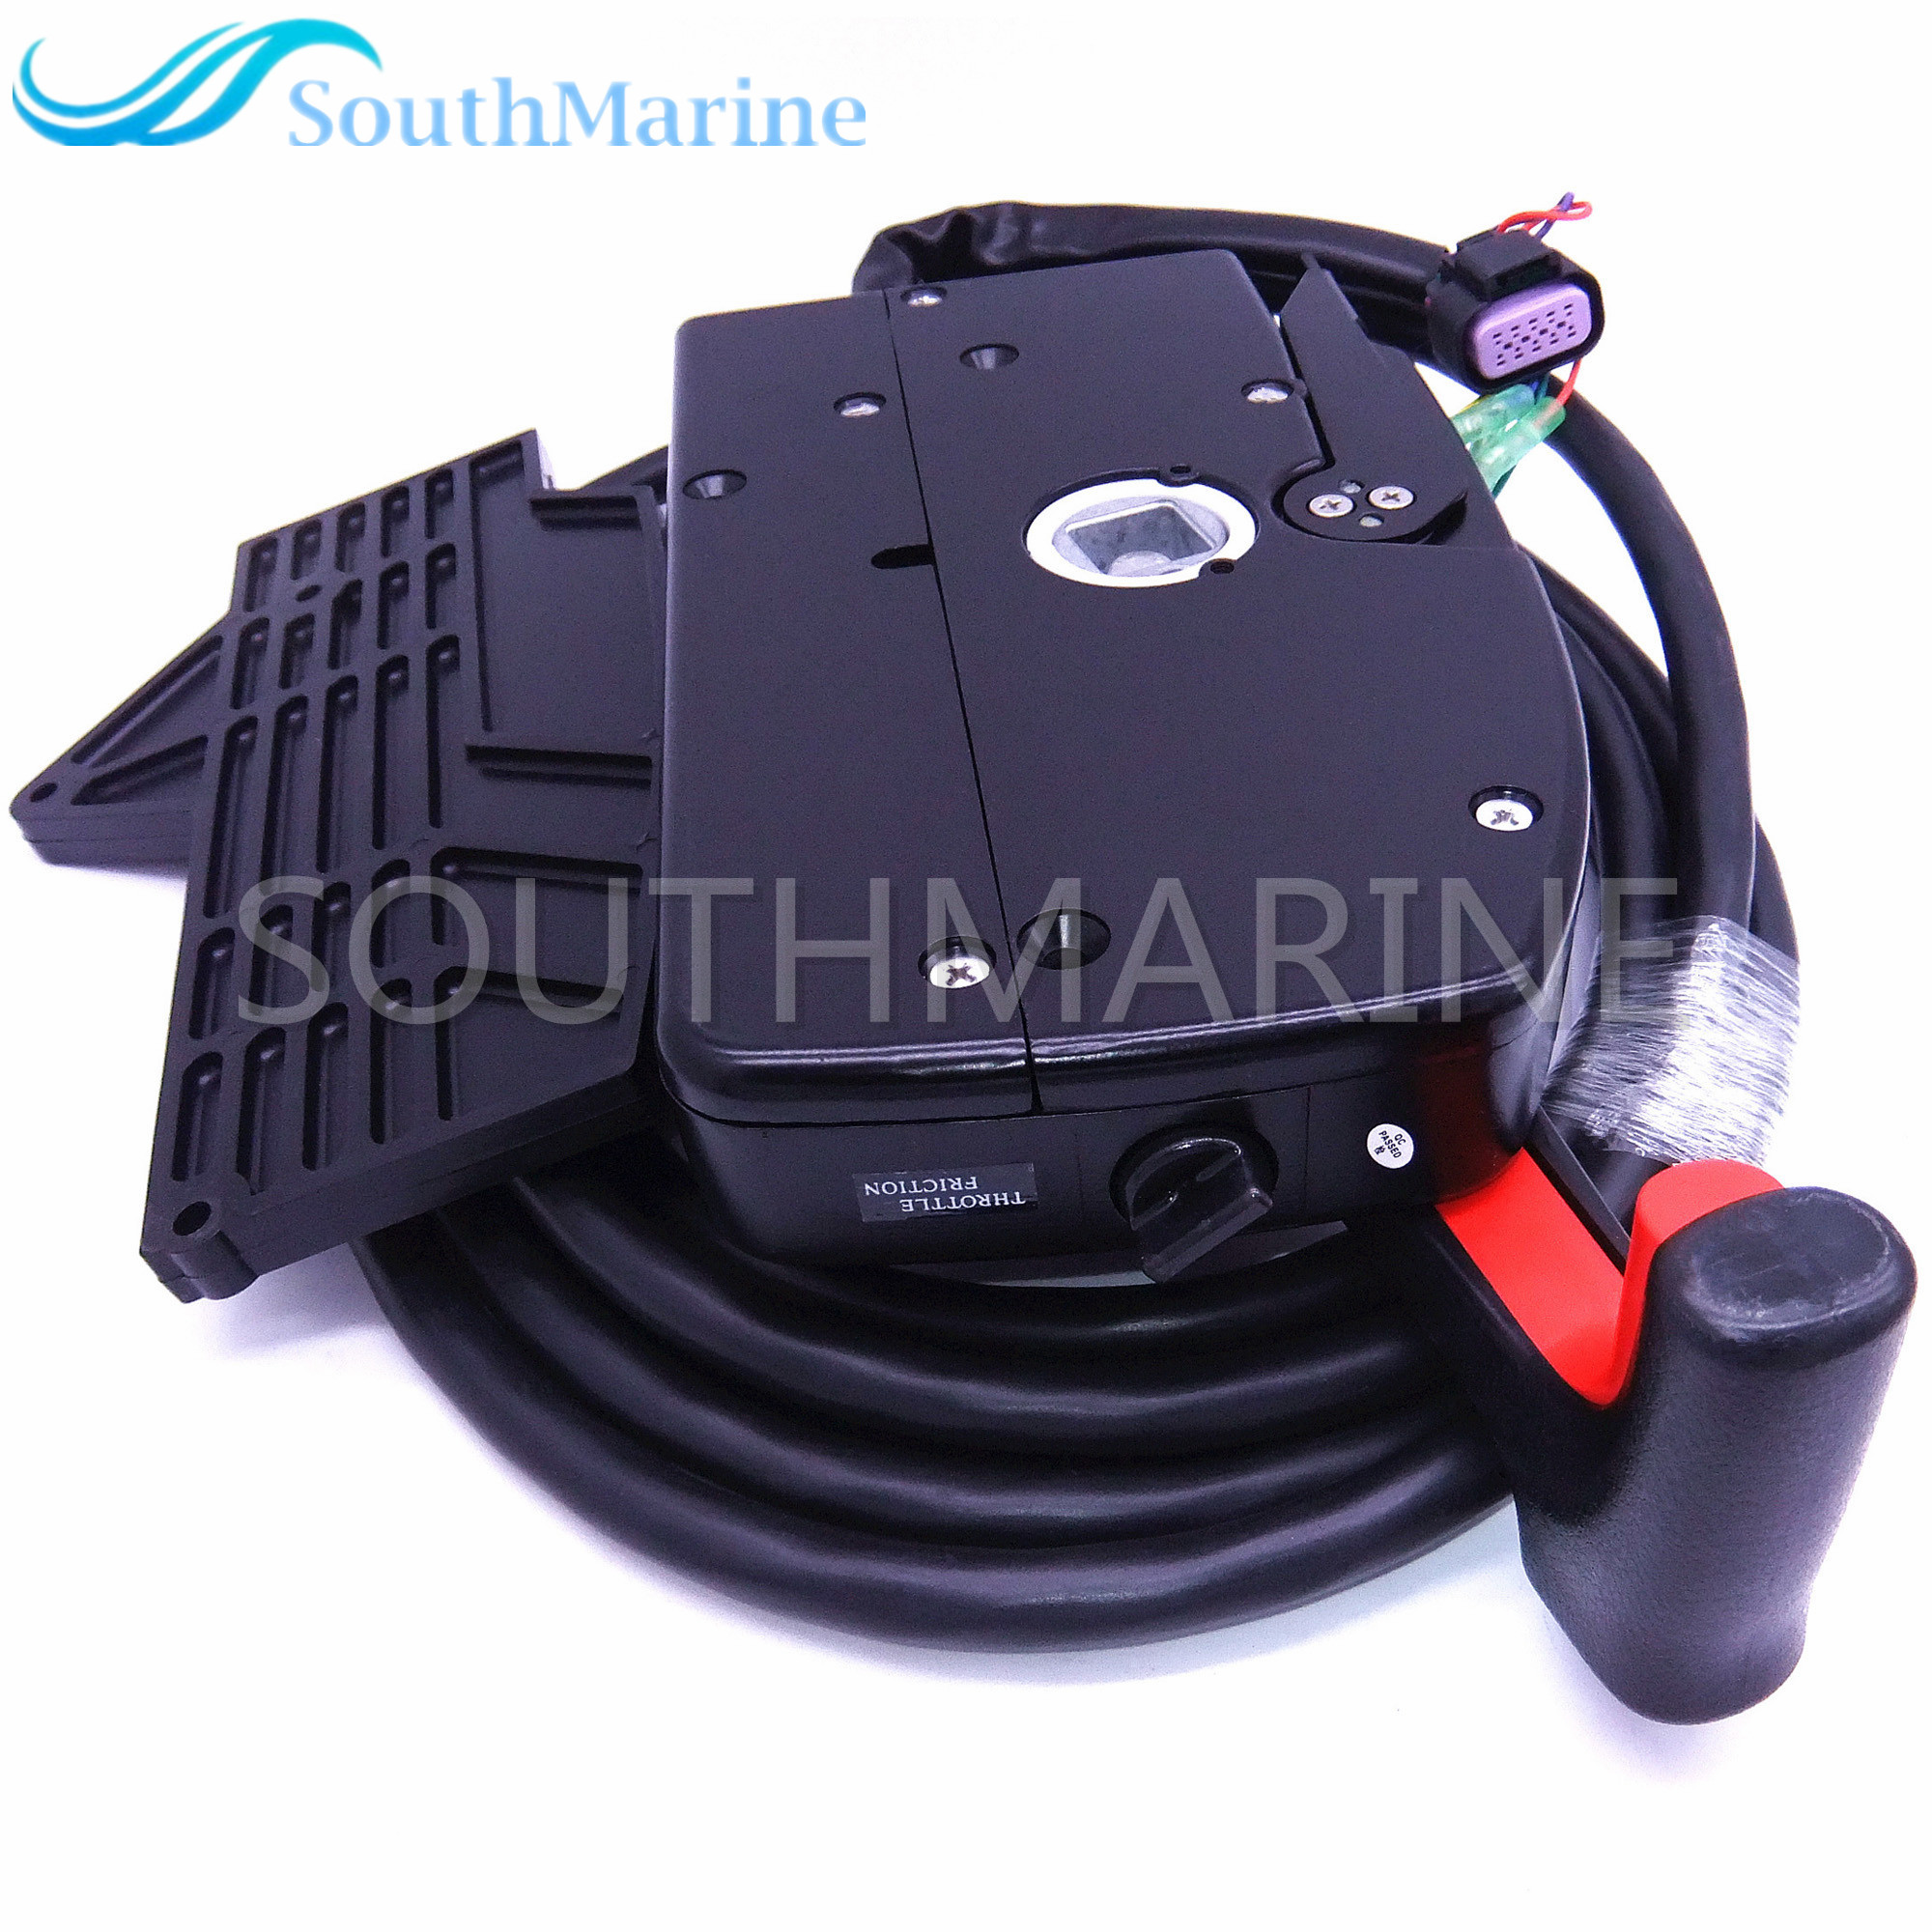 881170A13 Boat Motor Side Mount Remote Control Box With 14 Pin For Mercury Outboard Engine 14 Pin